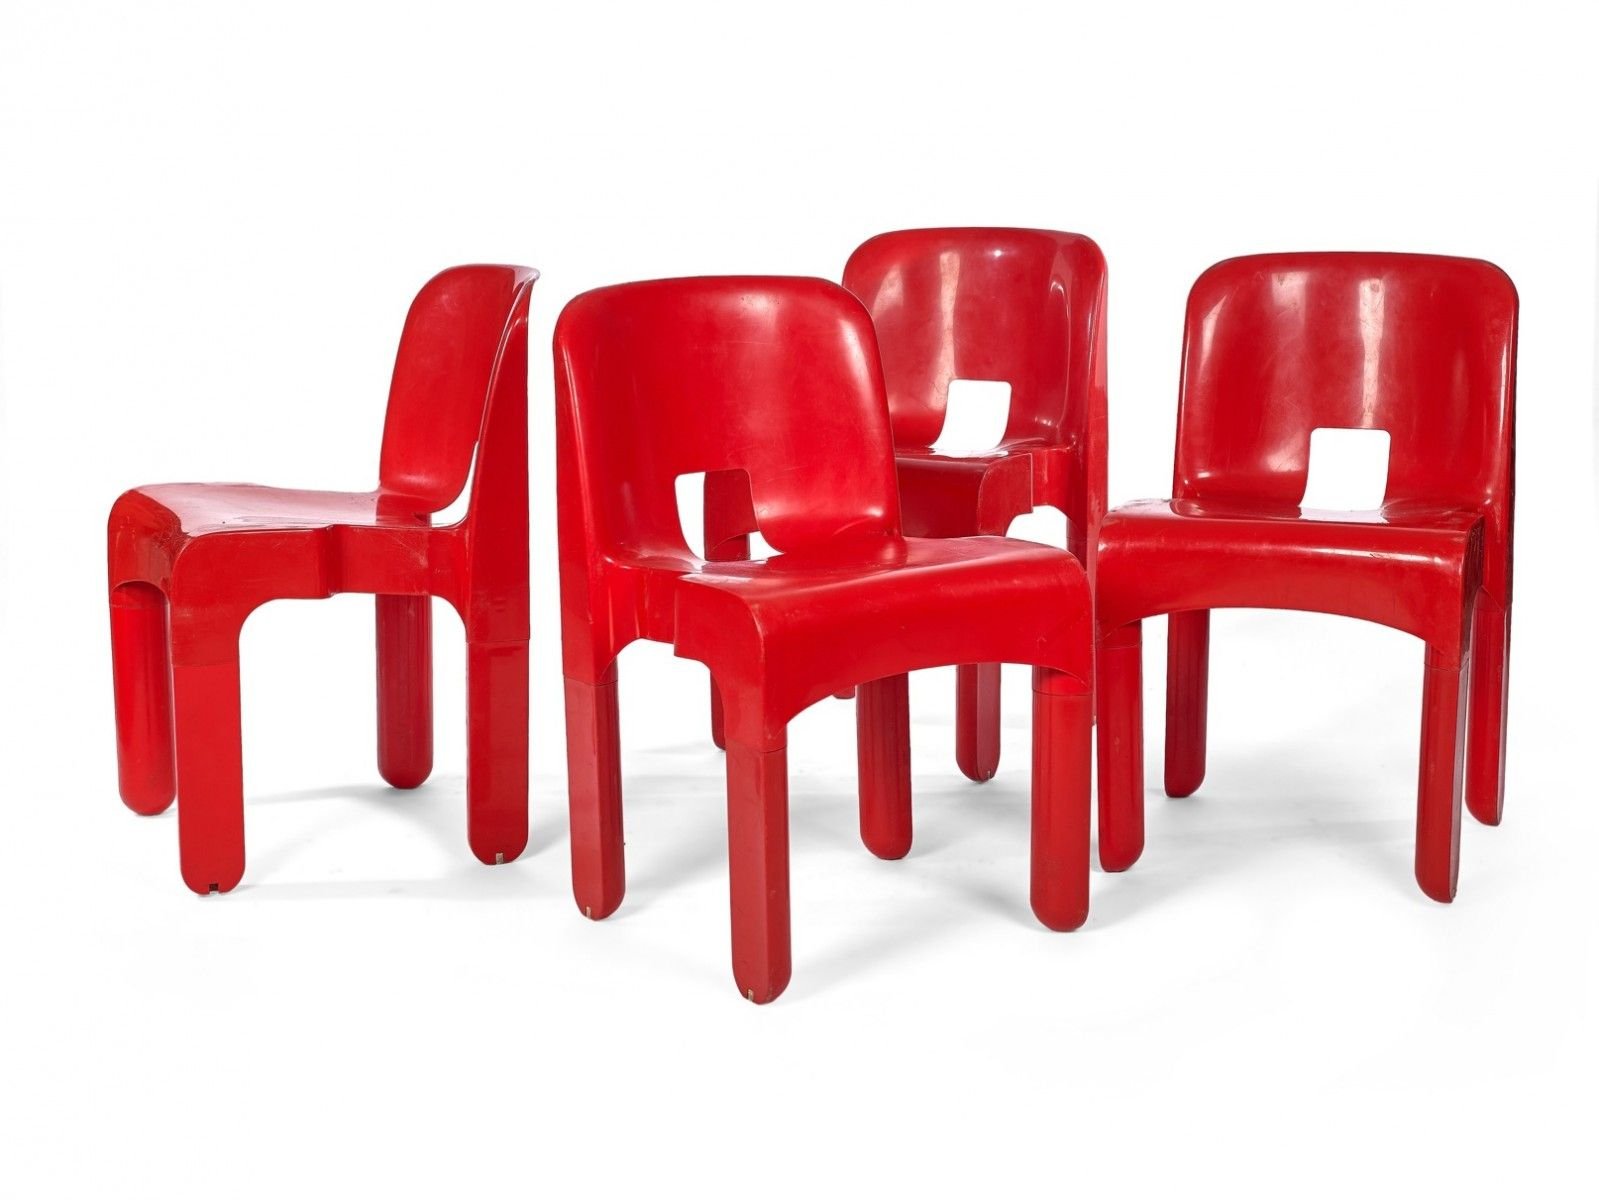 Model 4867 Red Chairs By Joe Colombo For Kartell Set Of 4 2  # Muebles Postmodernos